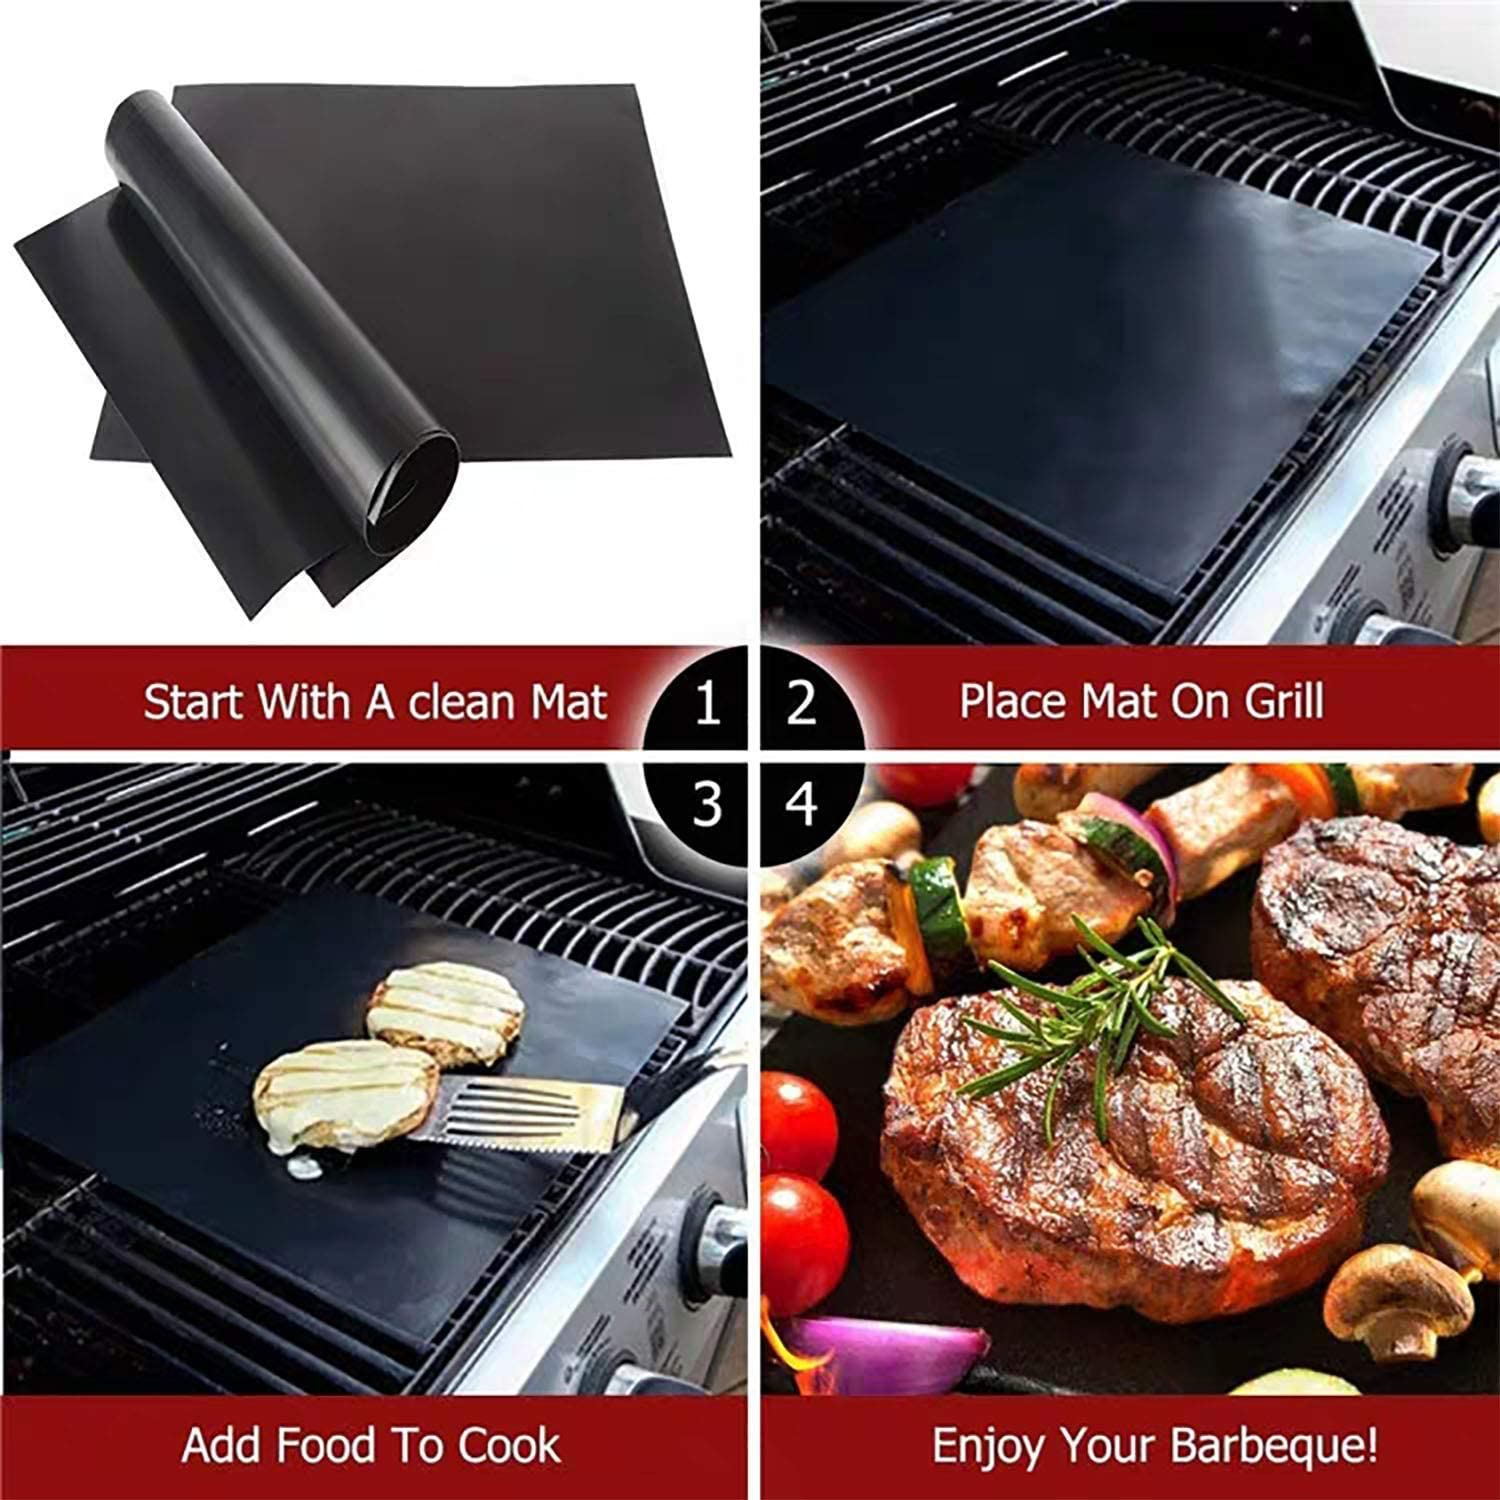 Charcoal grill rental | Rent your Kitchen Equipment at Party